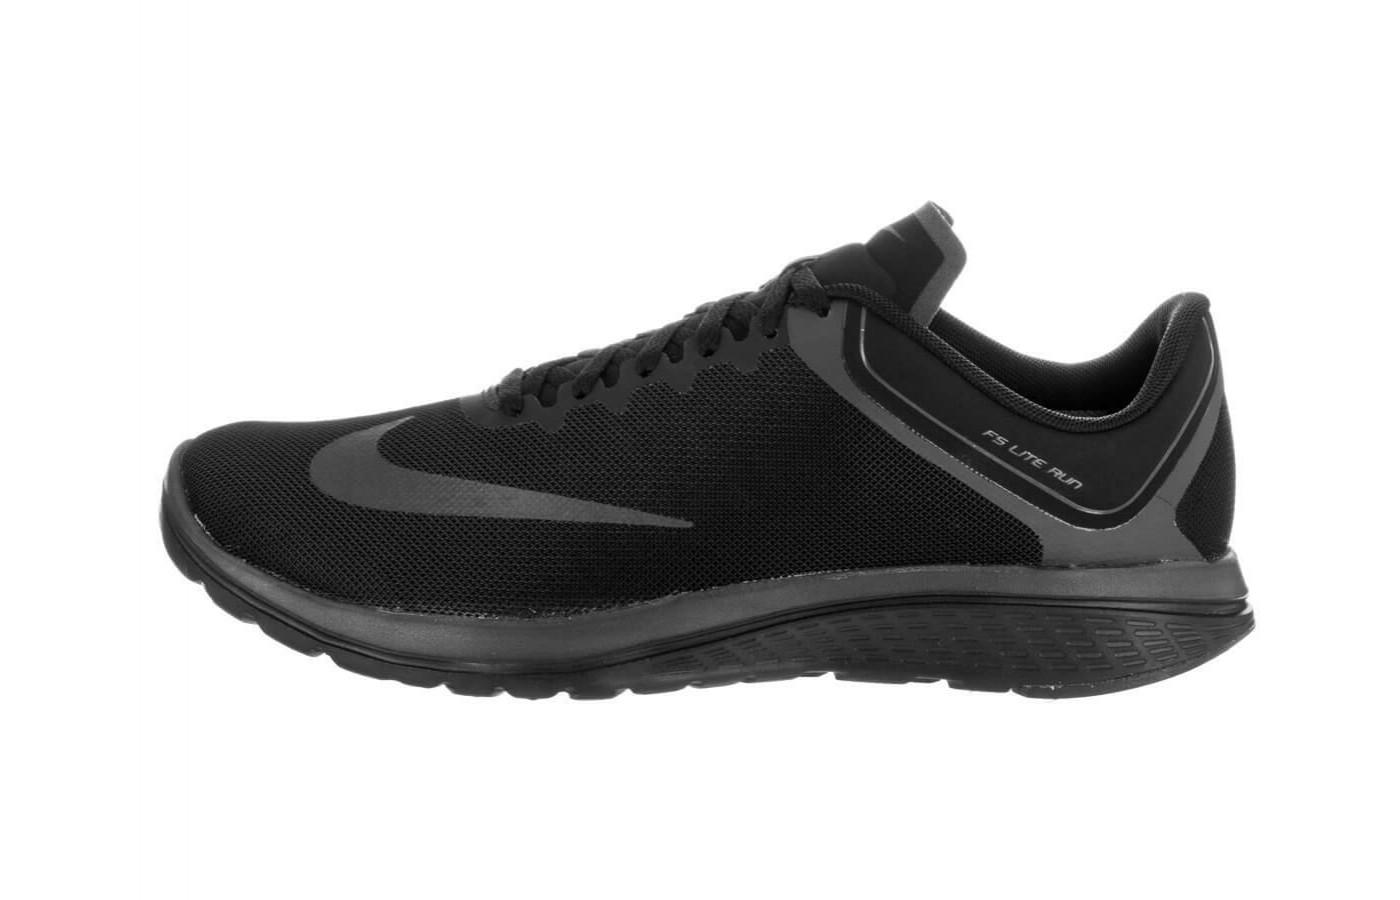 The Nike FS Lite Run 4 features a traditional lacing system